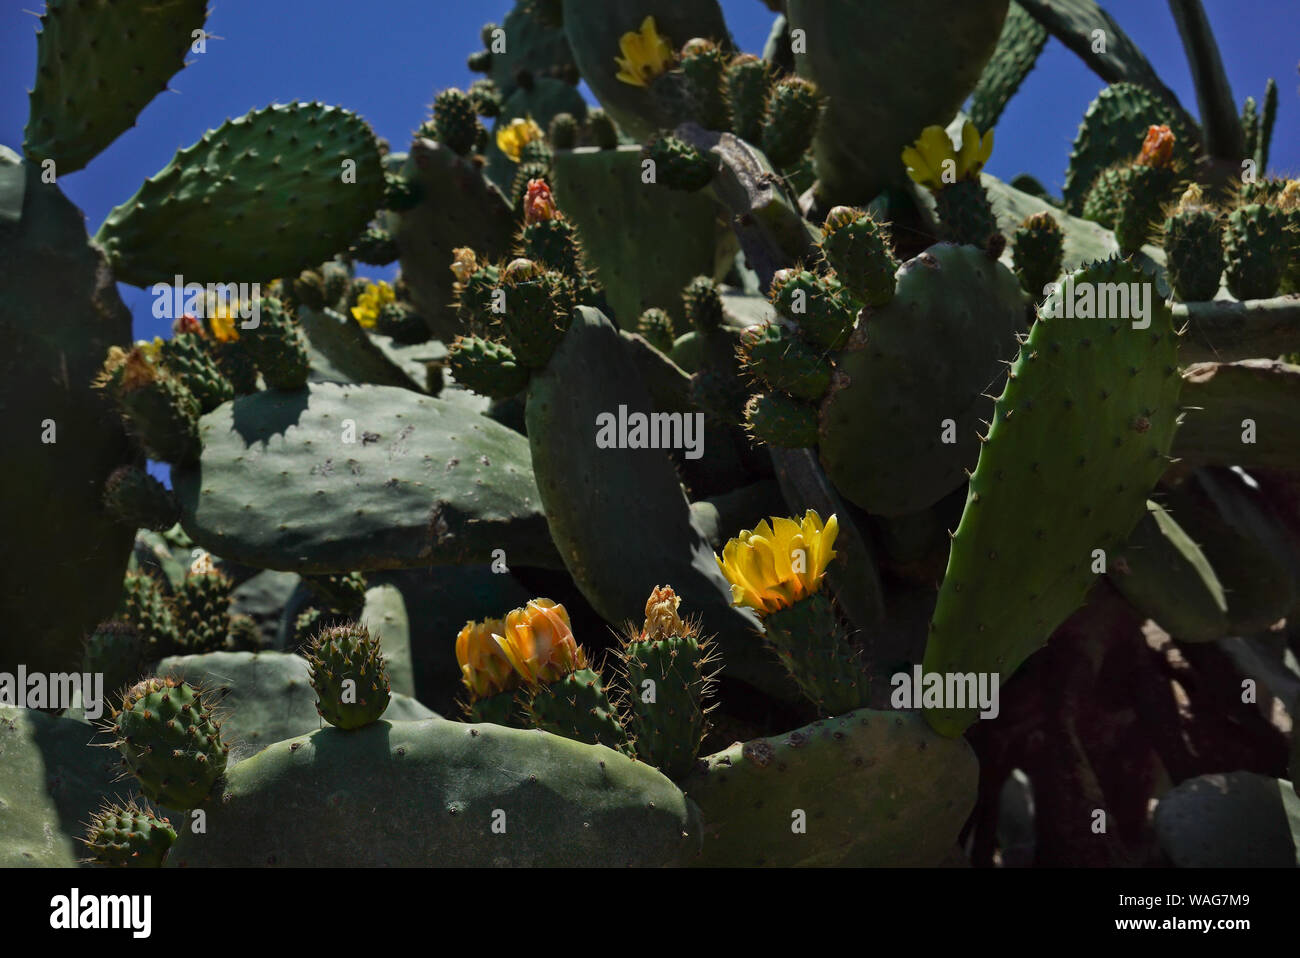 Yellow flowers on large green cacti against a blue sky. Wildlife. Close up. Hot sunny day. Contrast light. Stock Photo